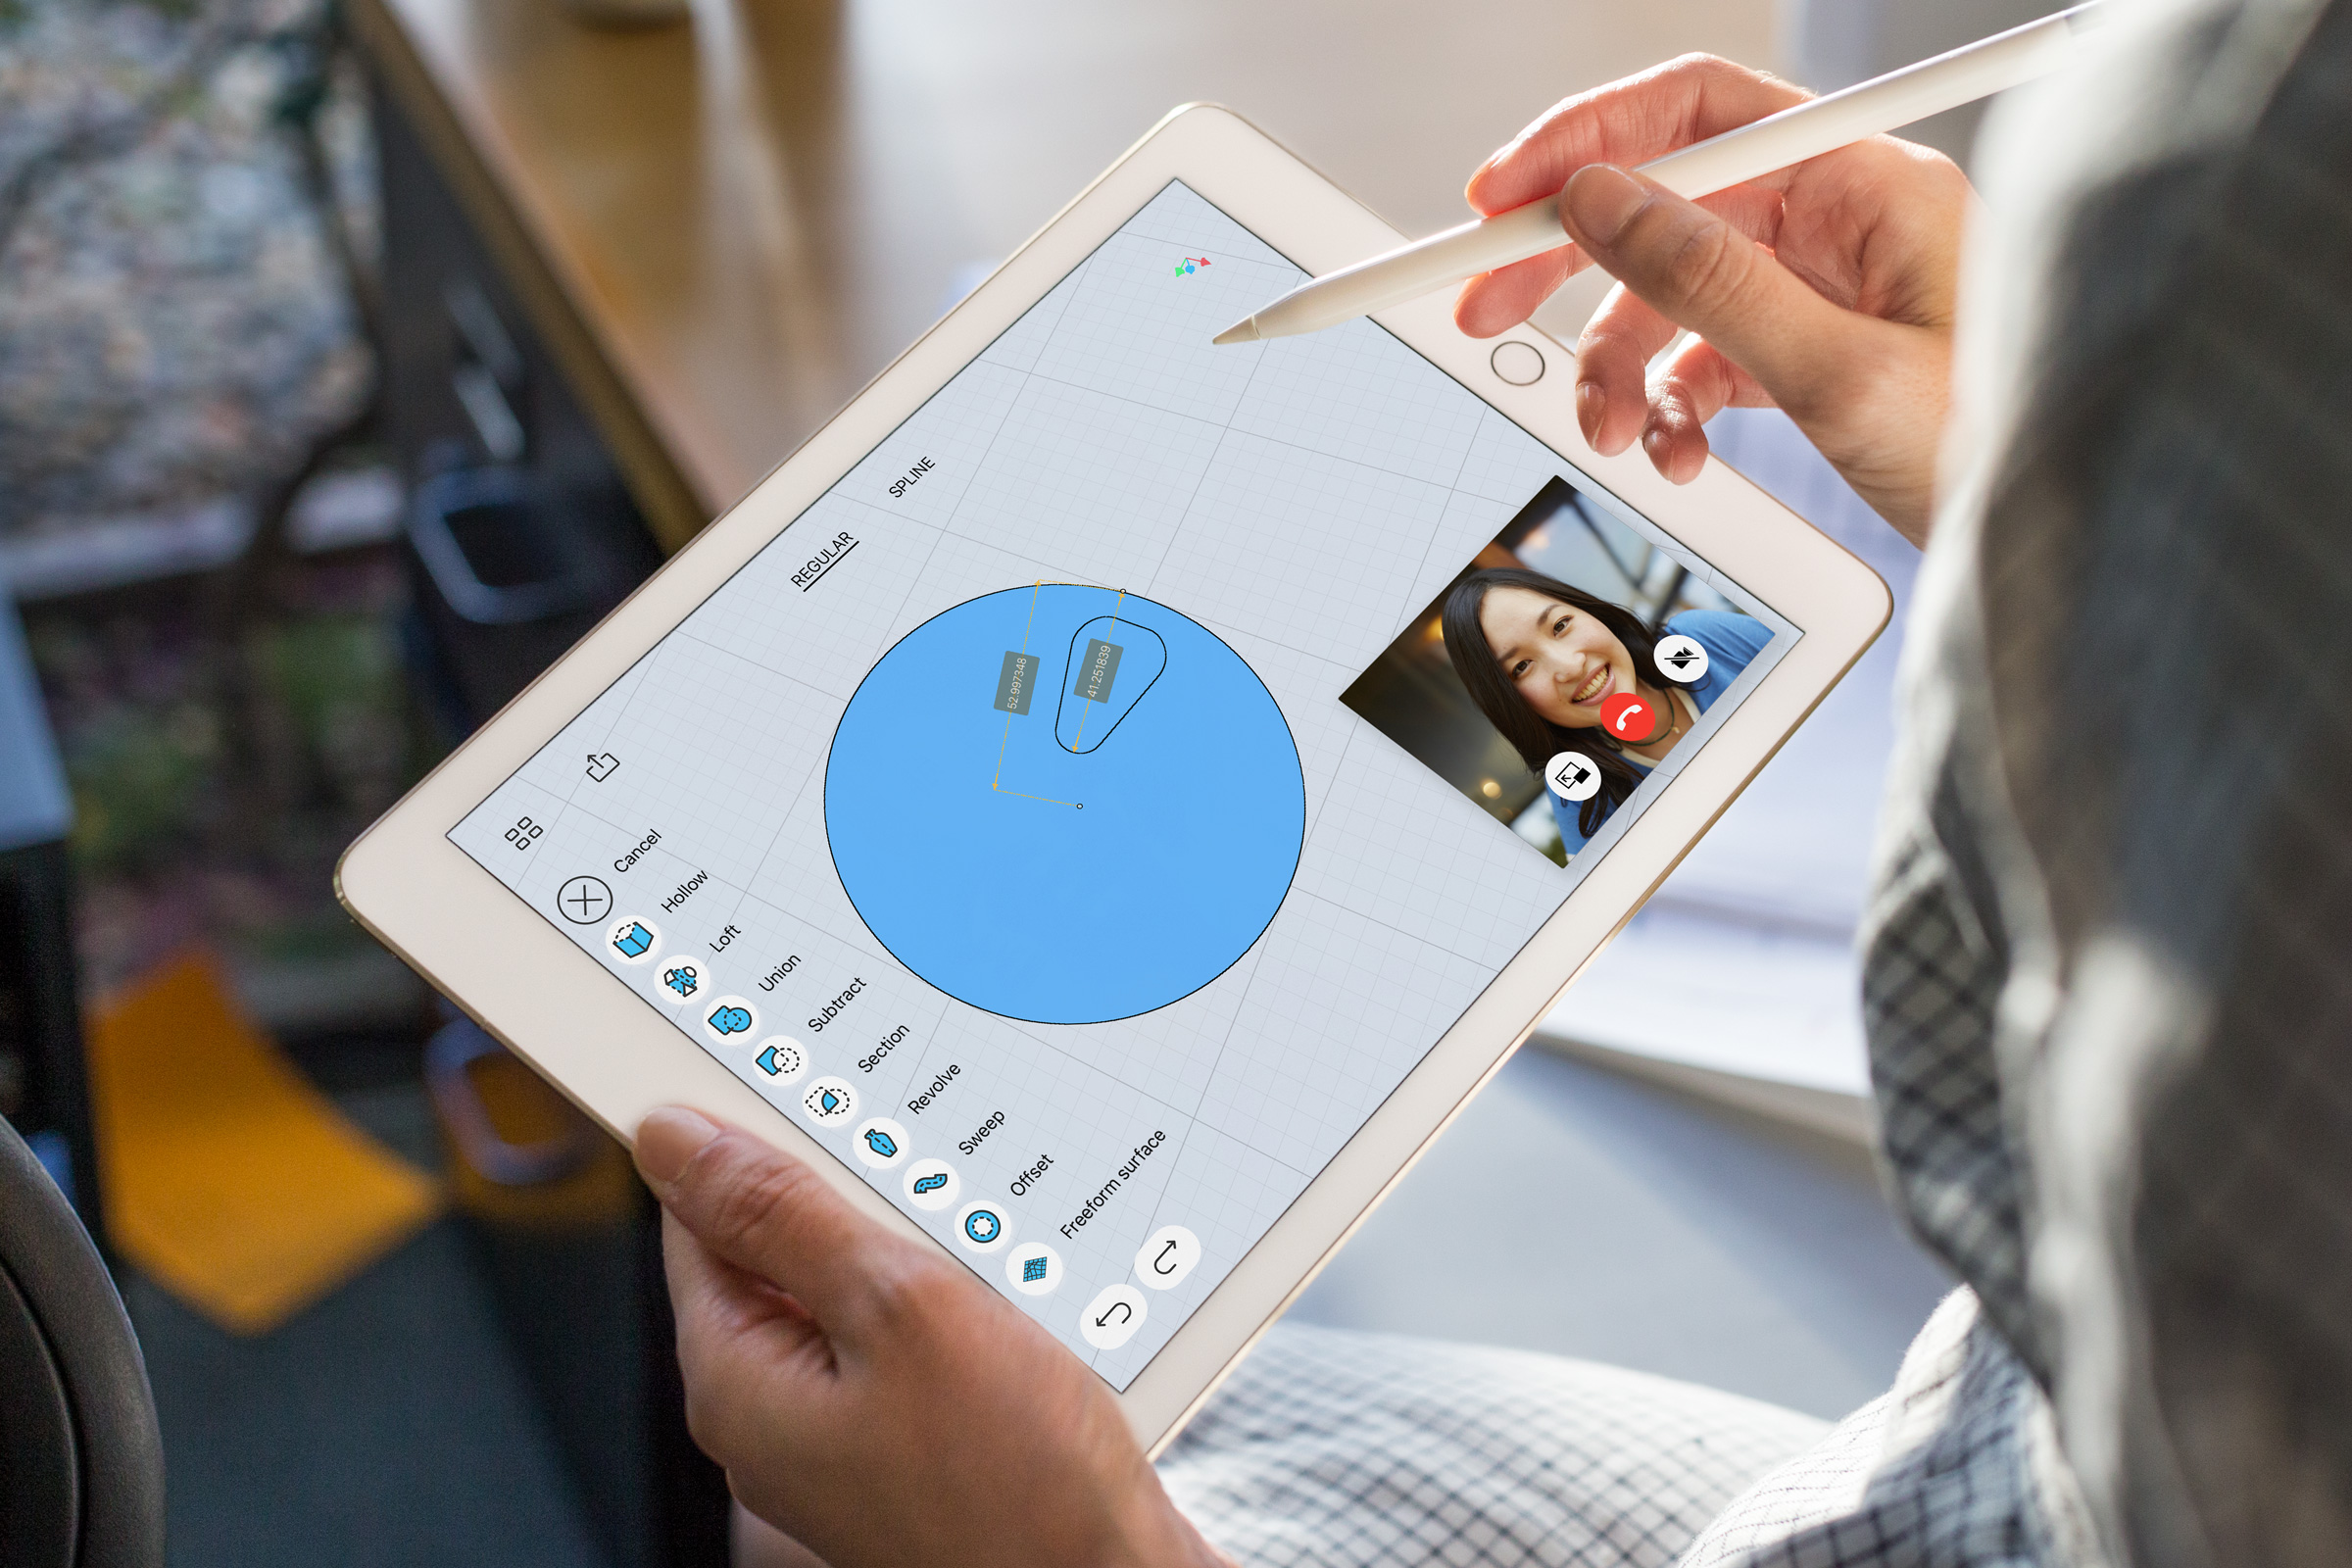 Promotional image showing a budget iPad held in one hand and Apple Pencil in another